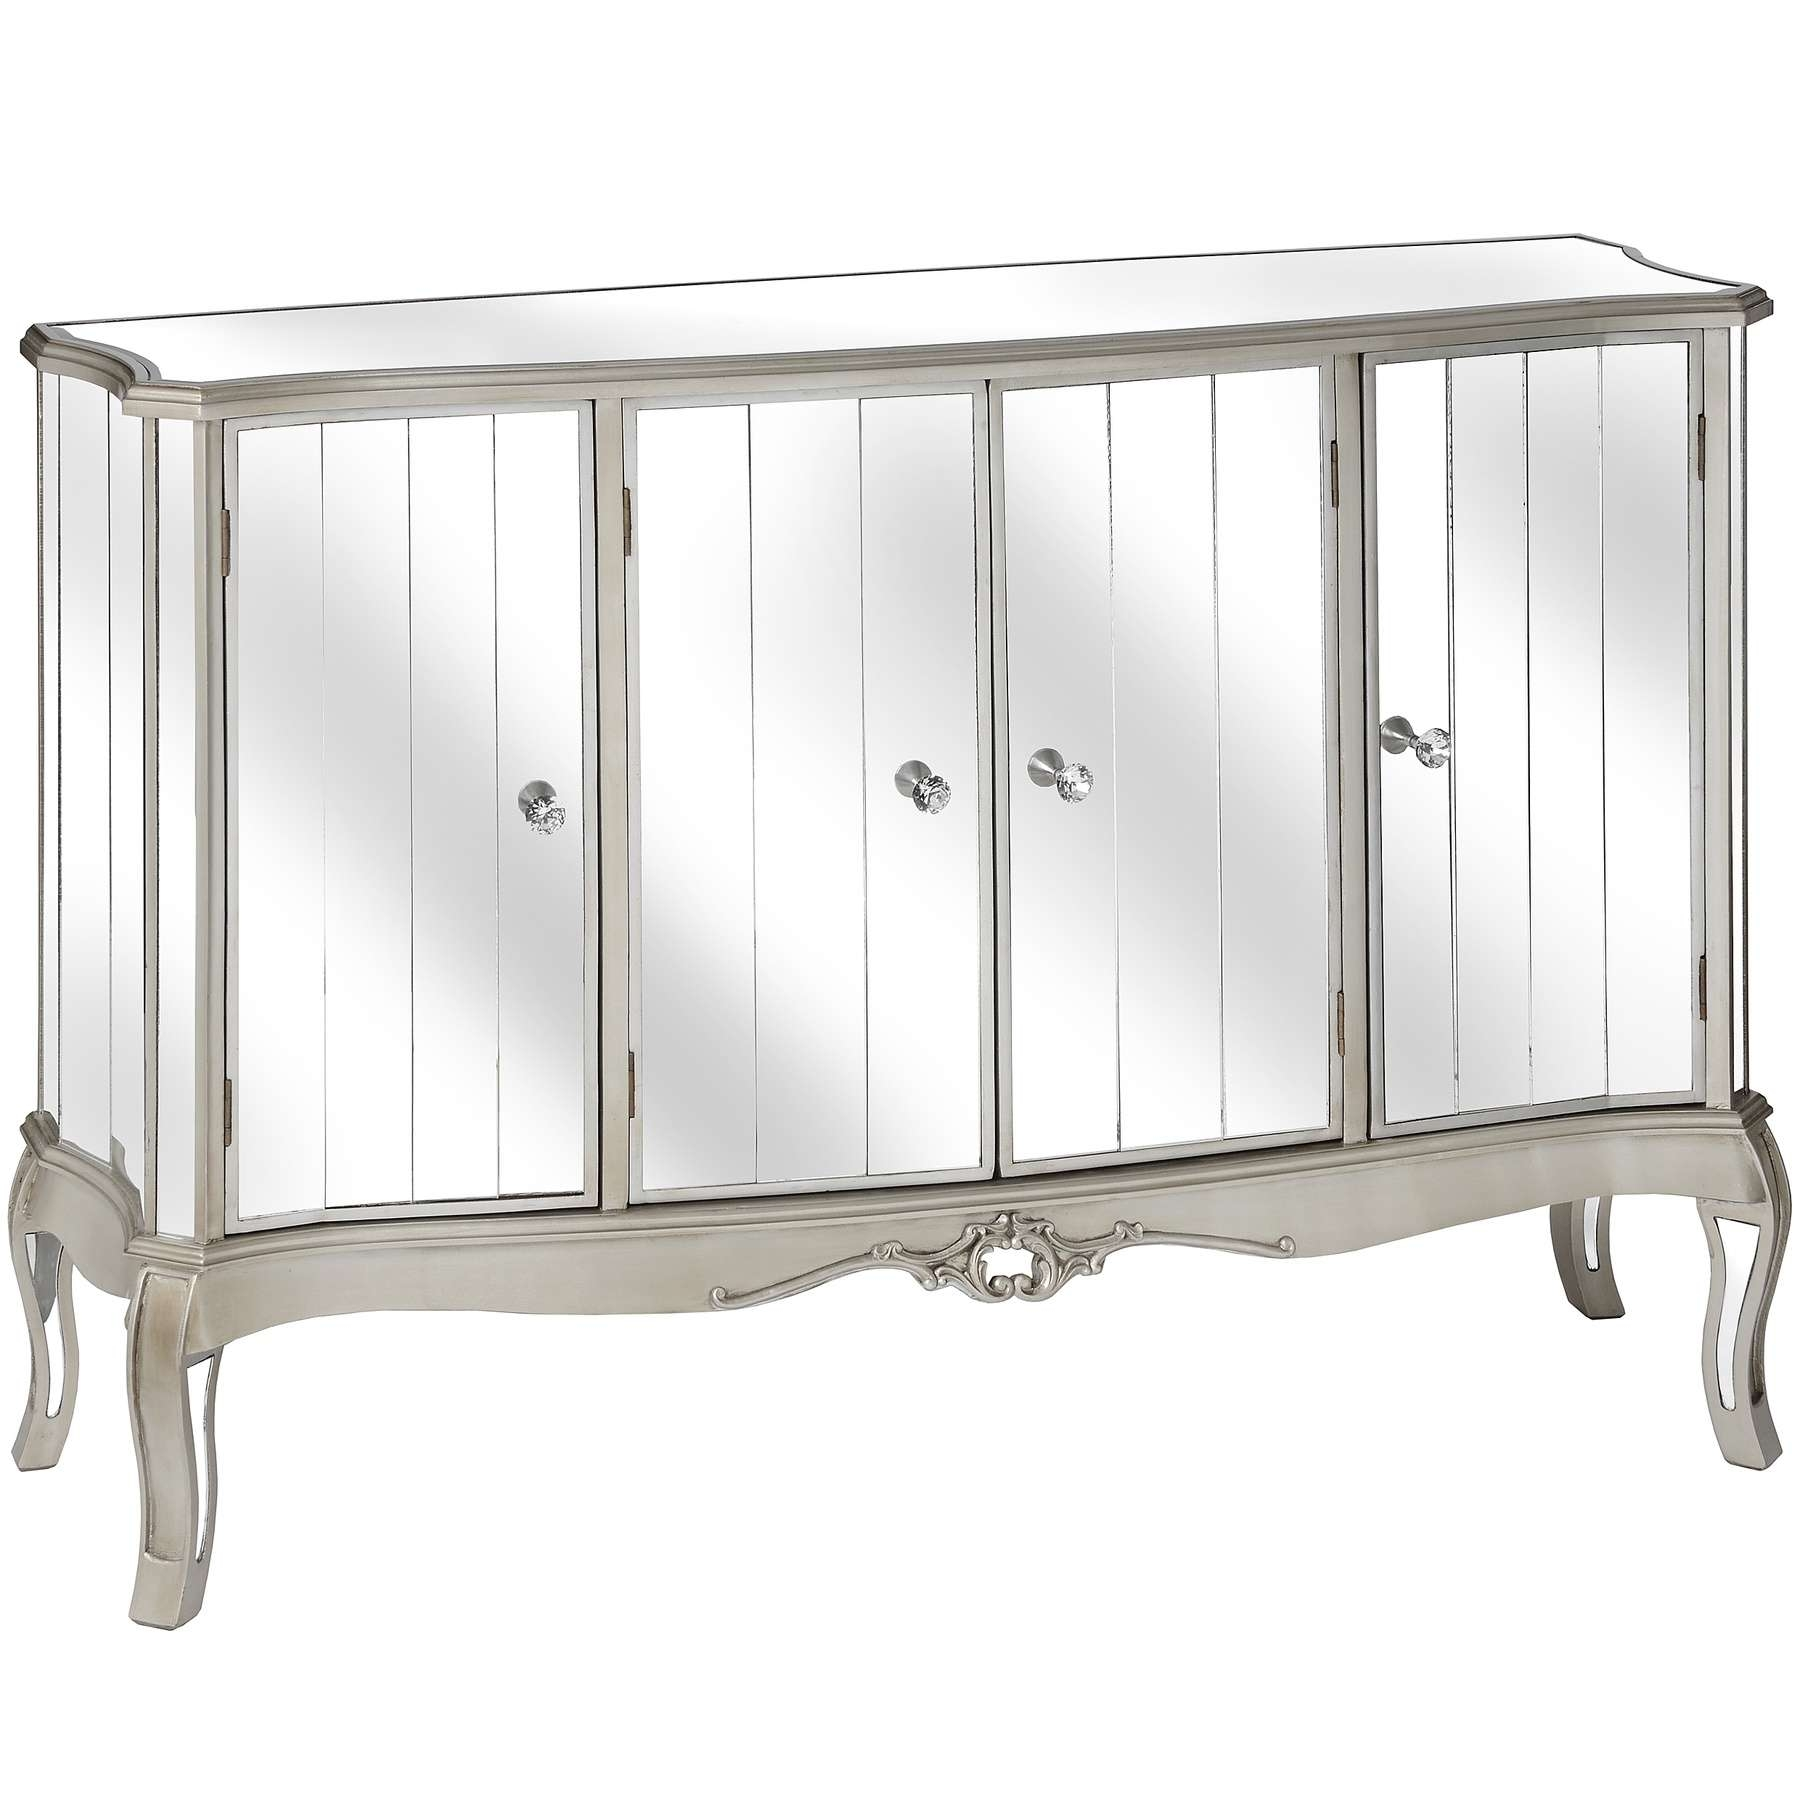 Argente Mirrored Furniture – Classic French Design | Baytree Interiors With White Mirrored Sideboards (View 19 of 20)